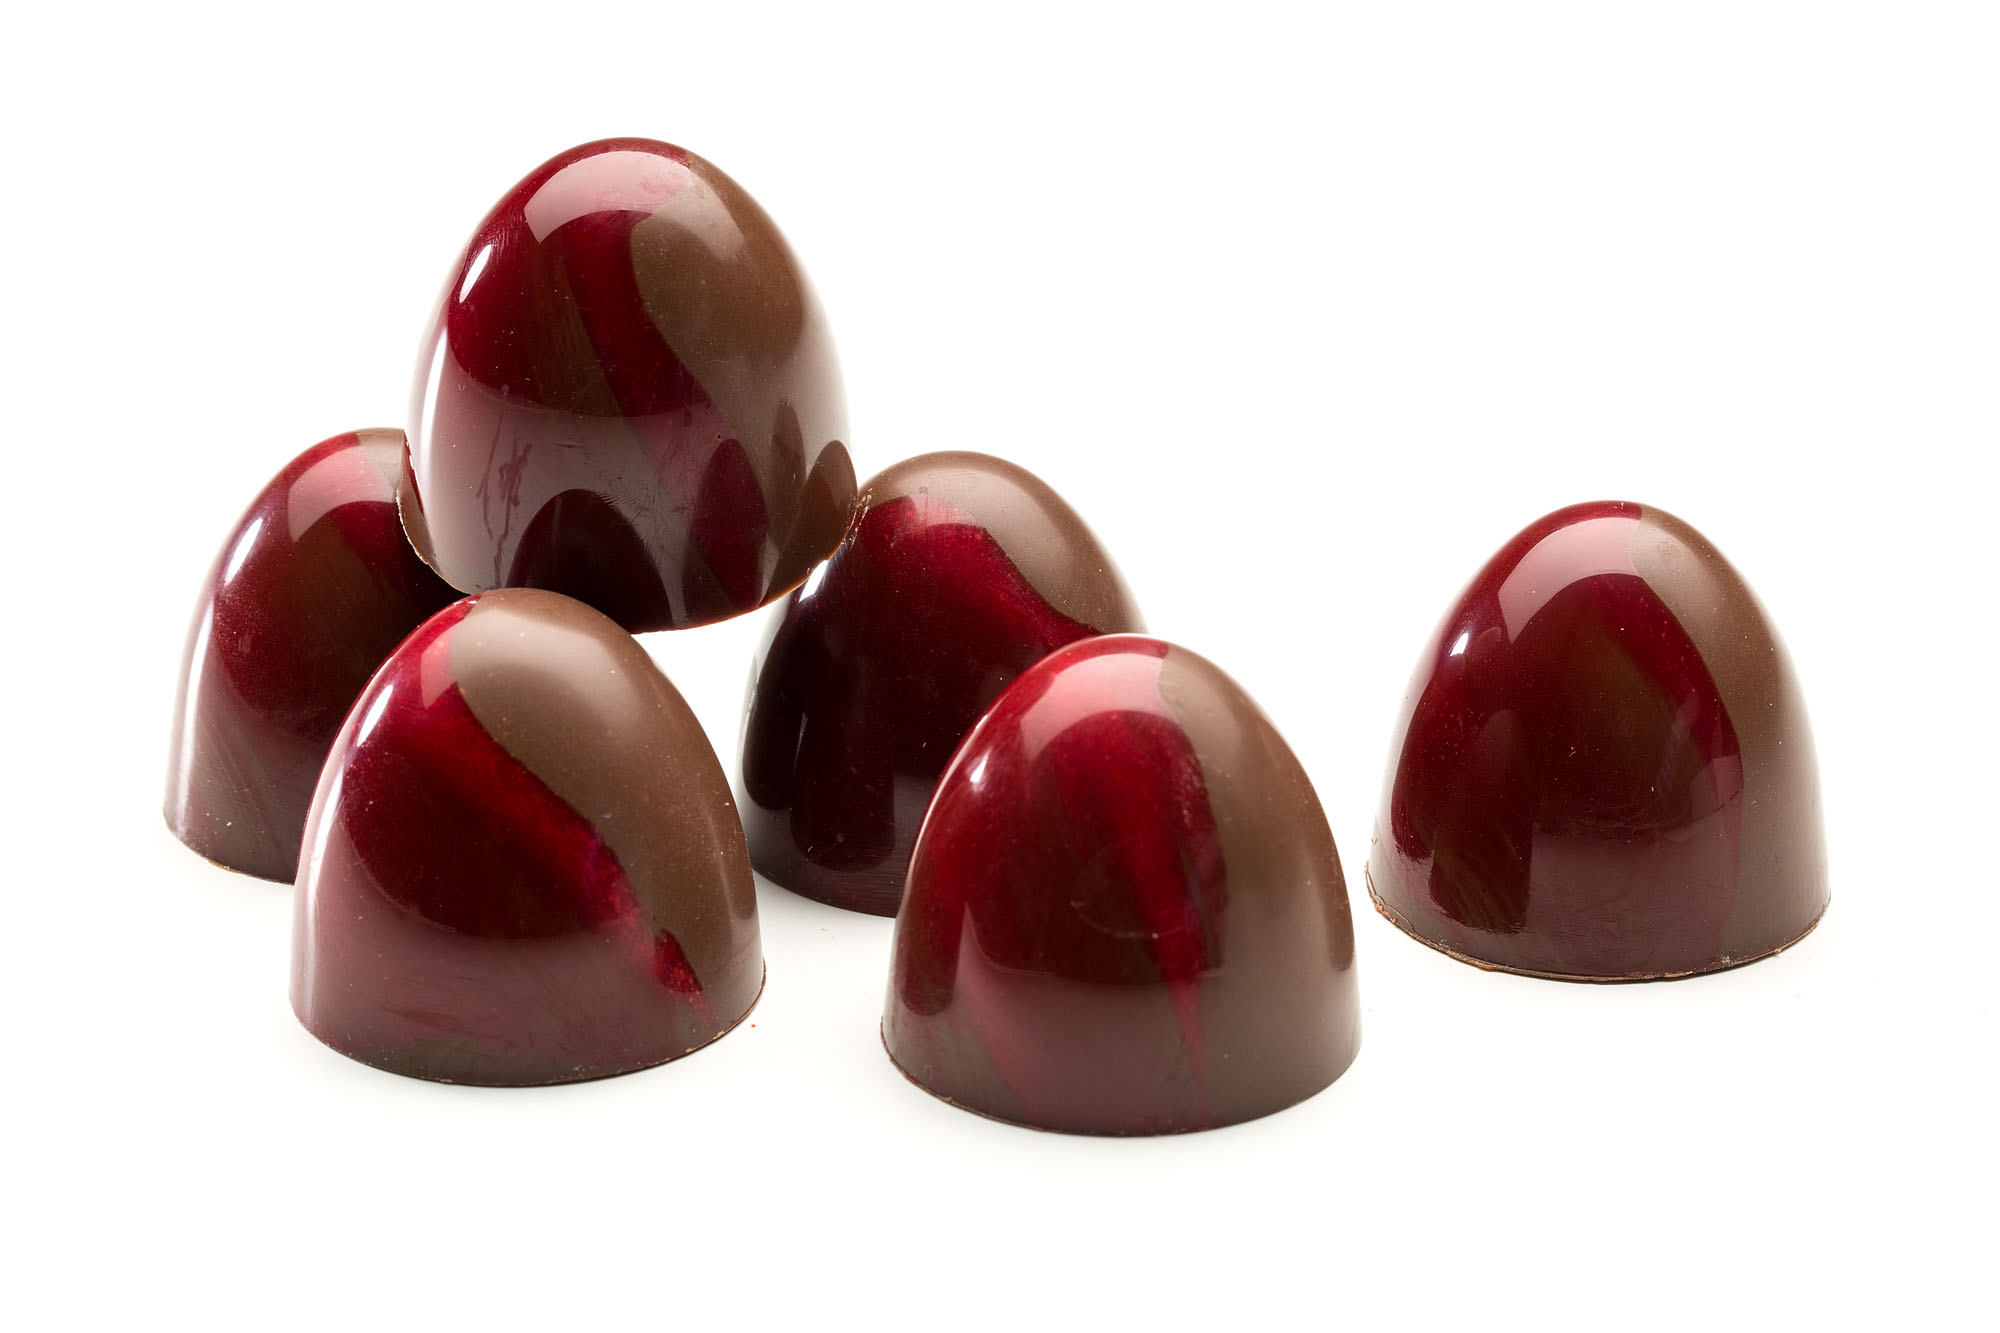 crunchy peanut butter ganache and sweet strawberry jam layer in a milk chocolate shell